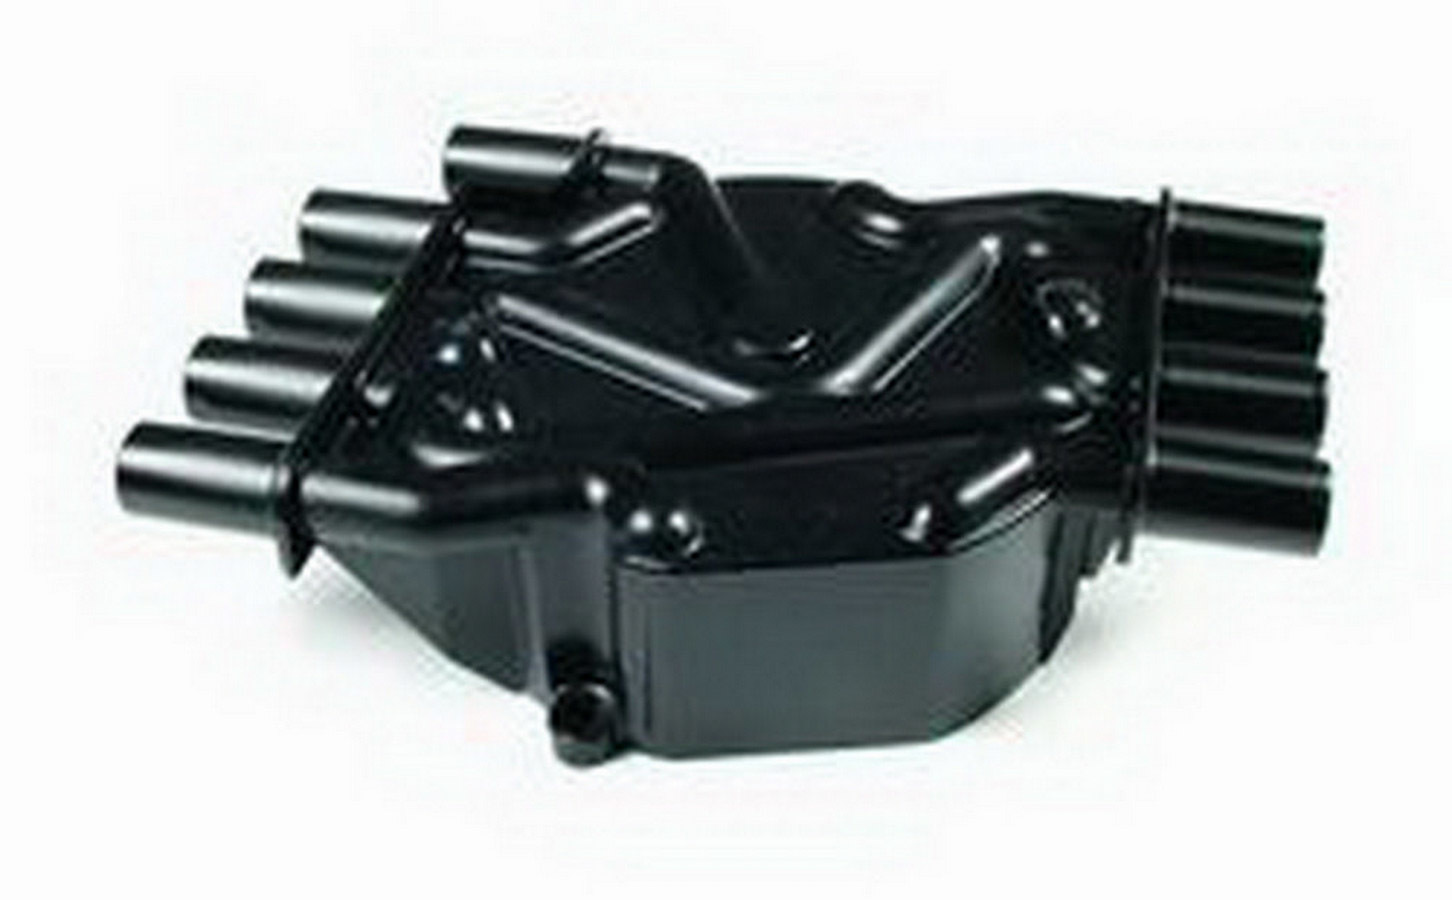 Accel 120141 Distributor Cap, Crab Style, Socket Style Terminals, Brass Terminals, Screw Down, Black, Non-Vented, Chevy V8, Each